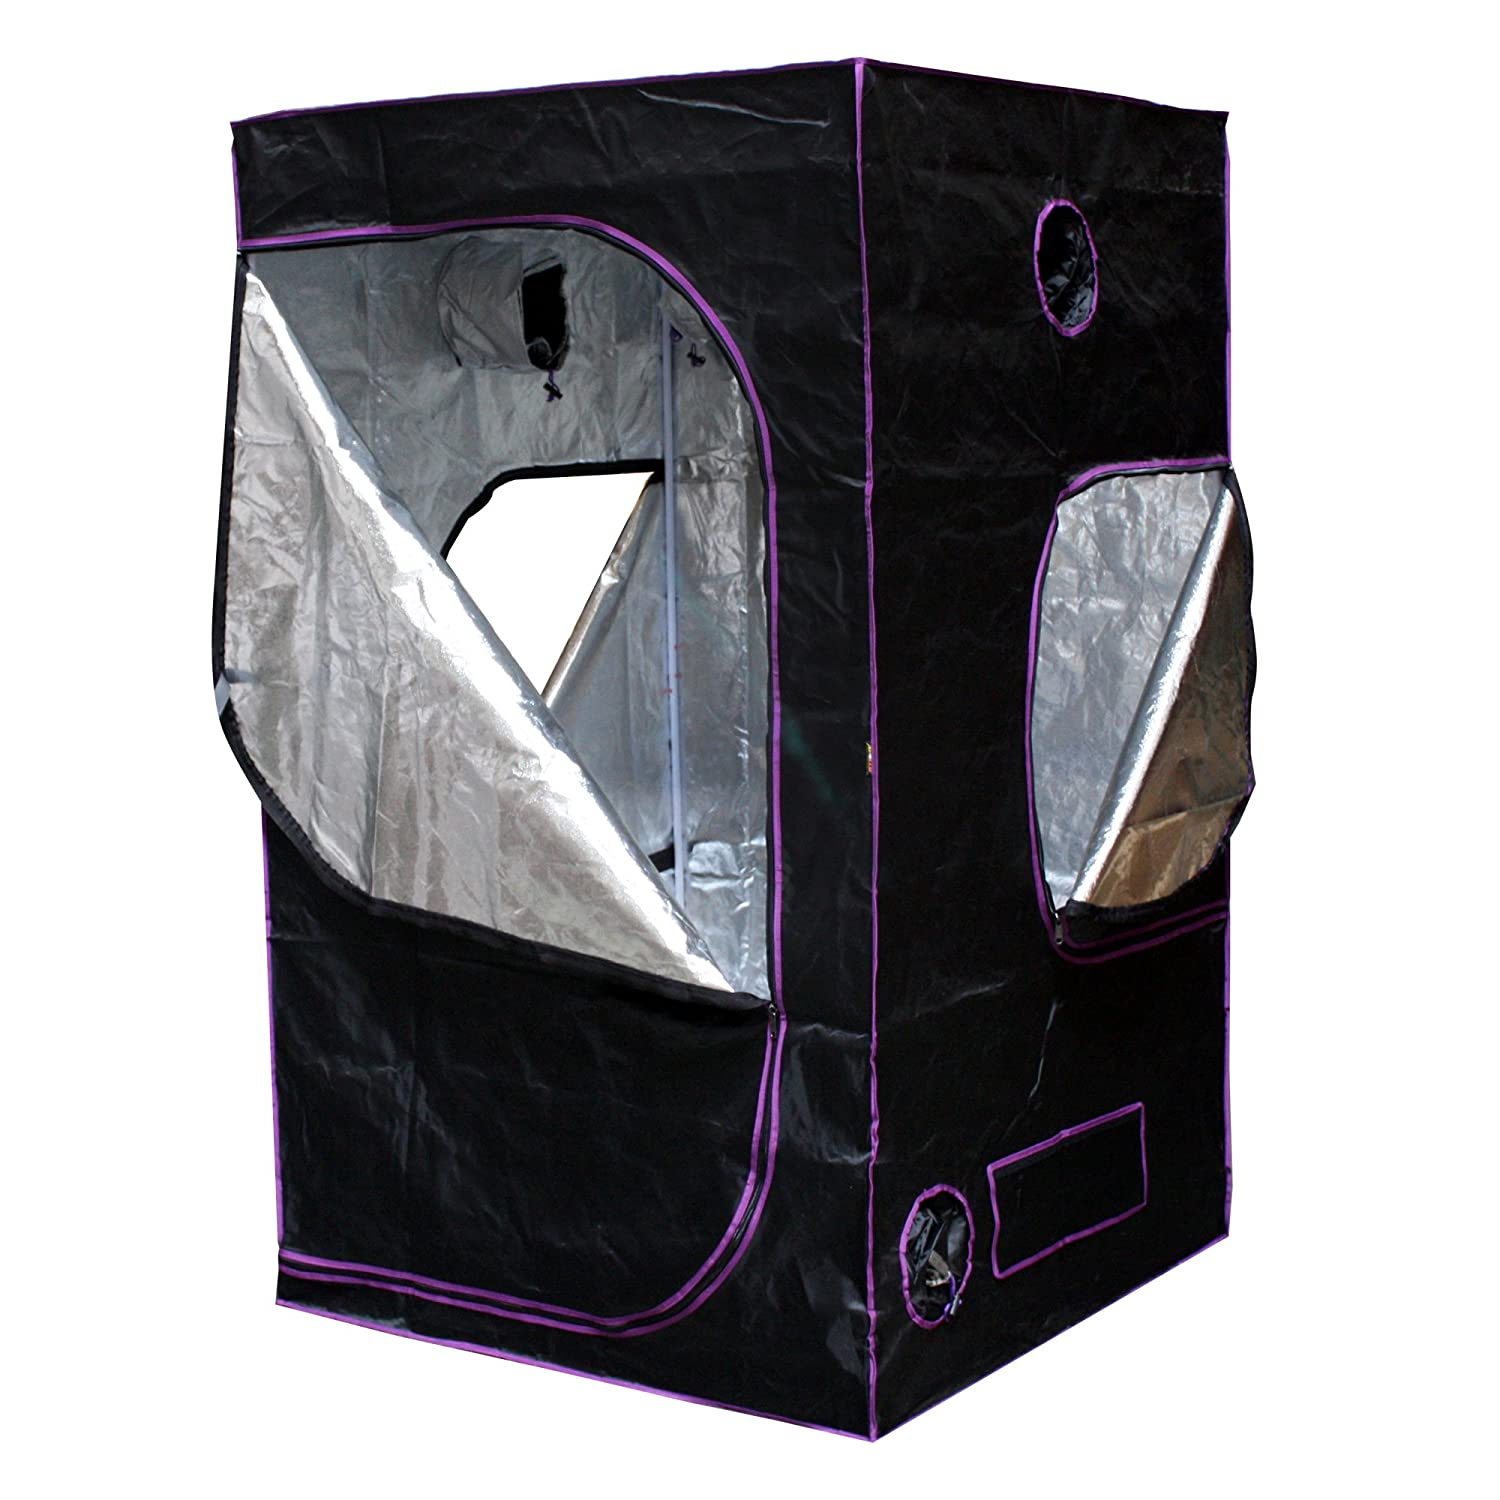 Best Grow Tents - My Choice